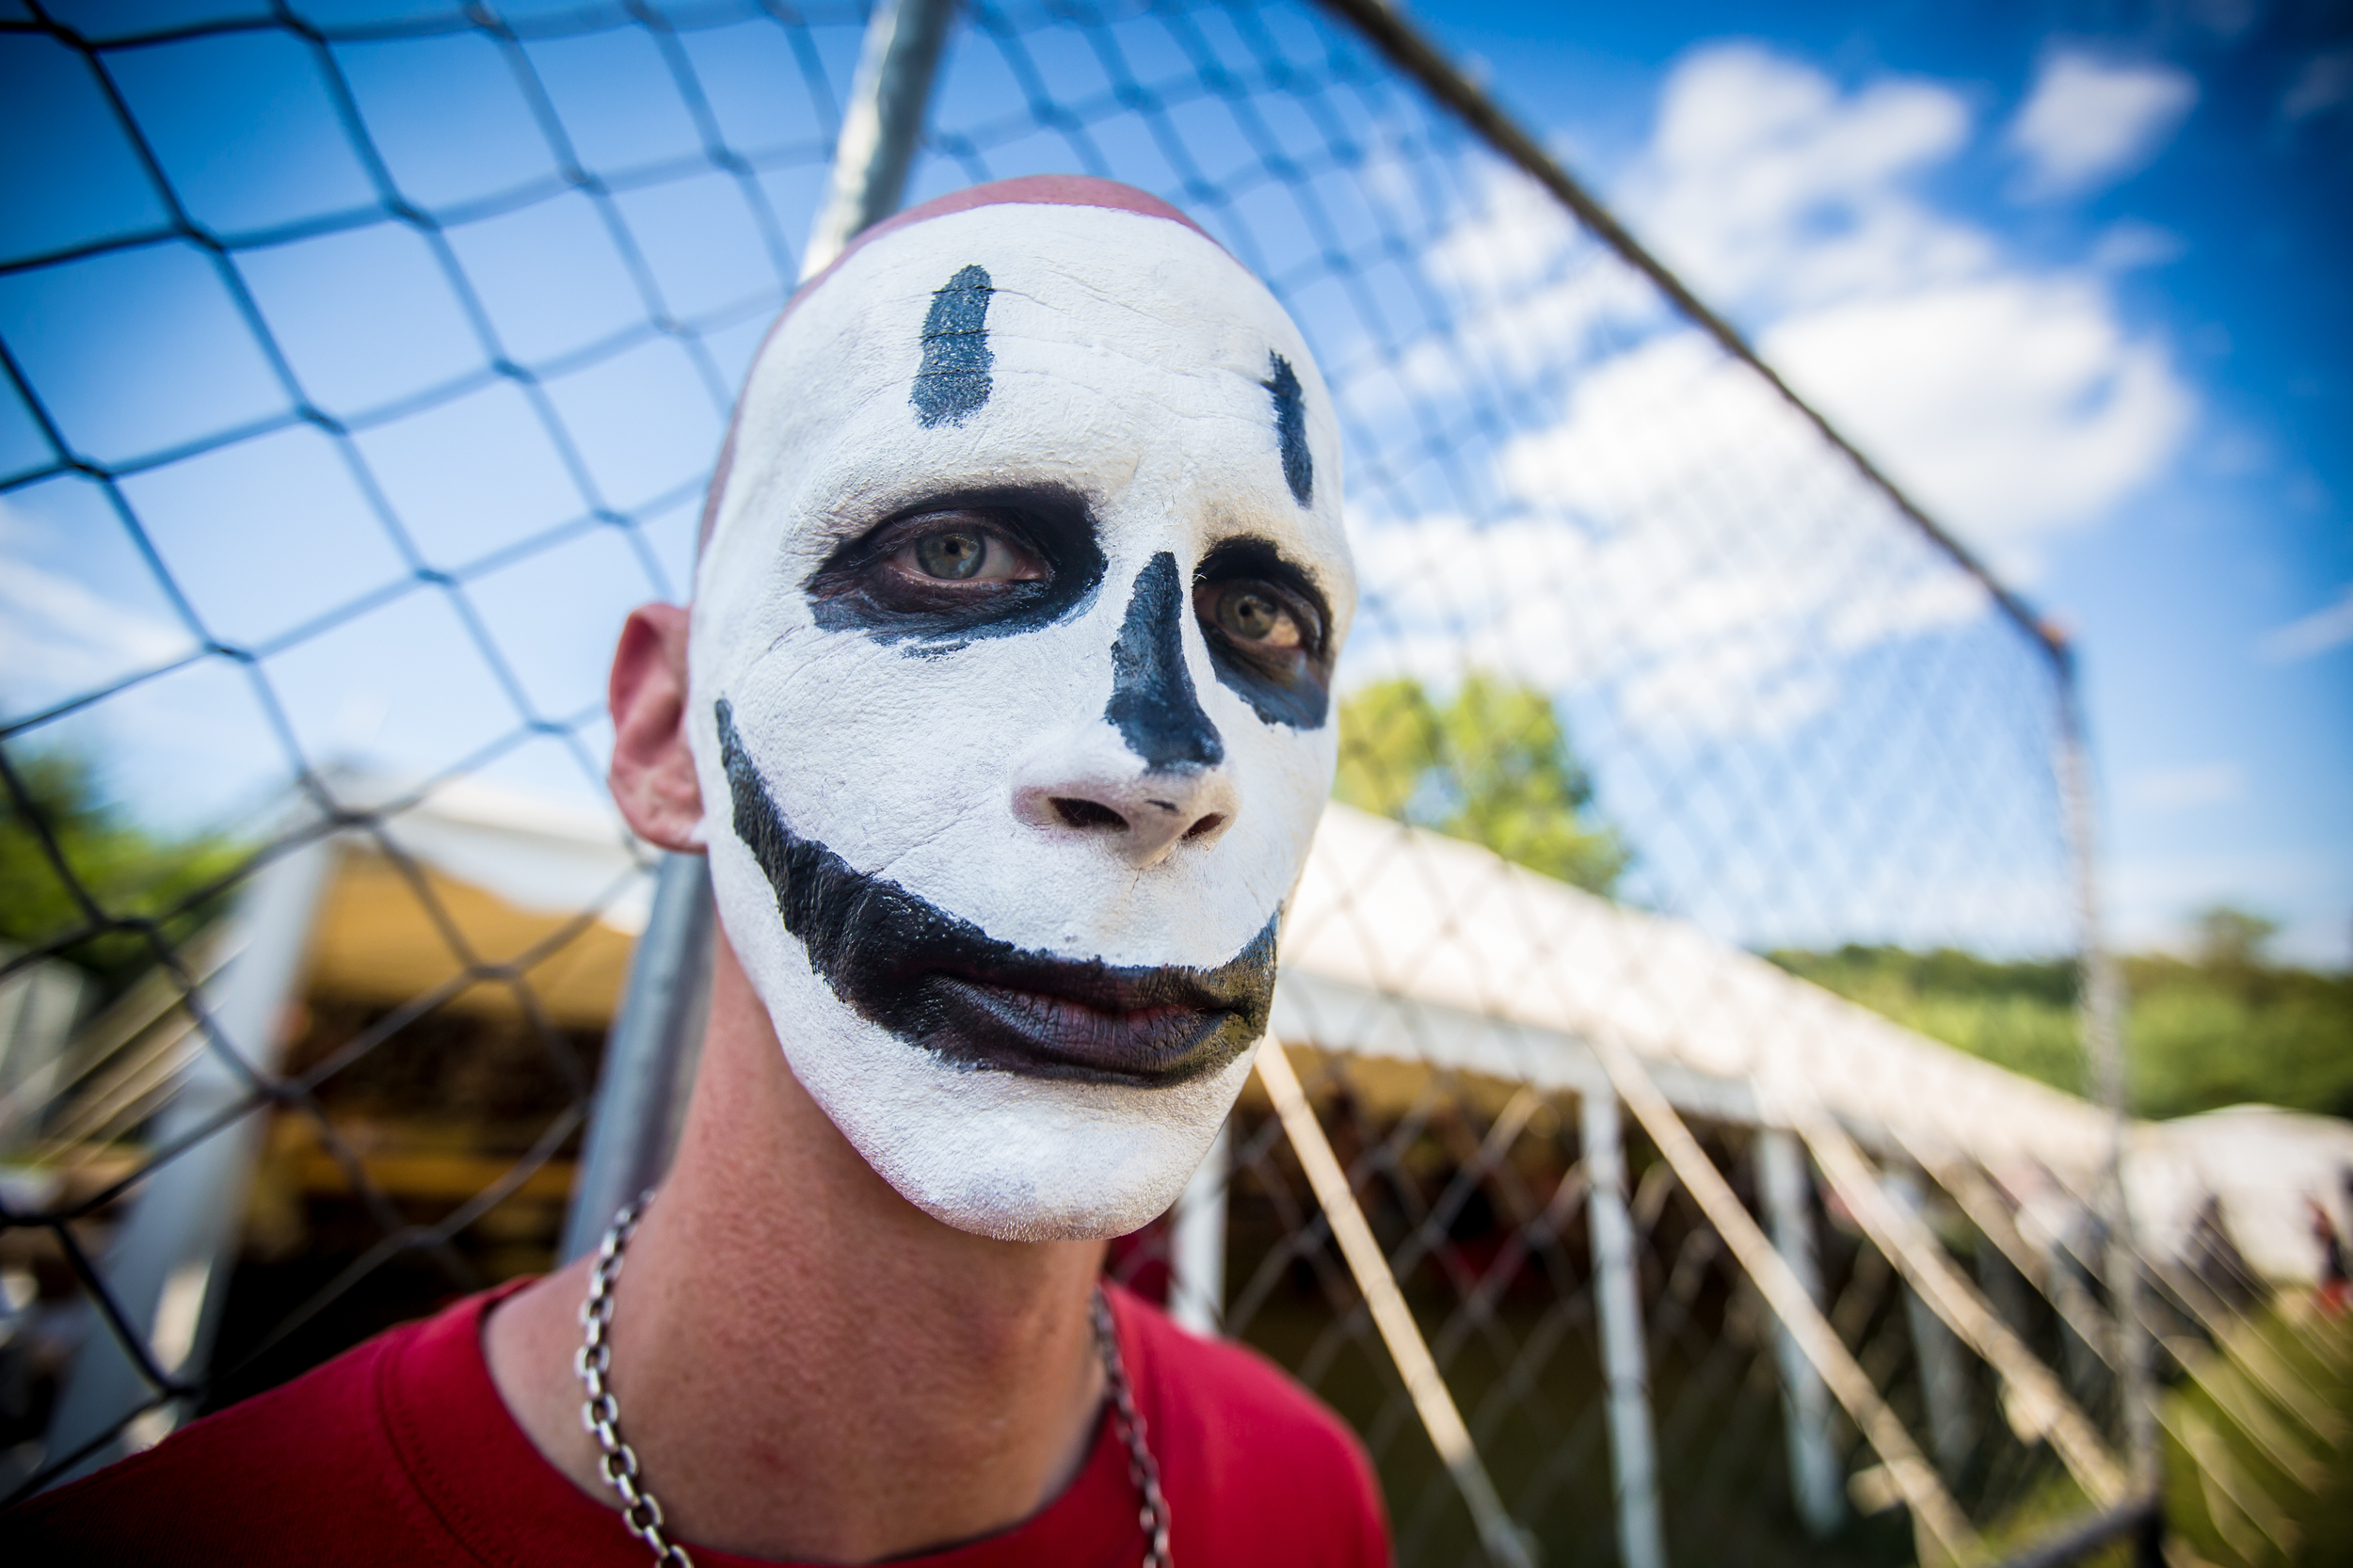 gotj 2014_day 3-93 juggalo facepaint fence.jpg